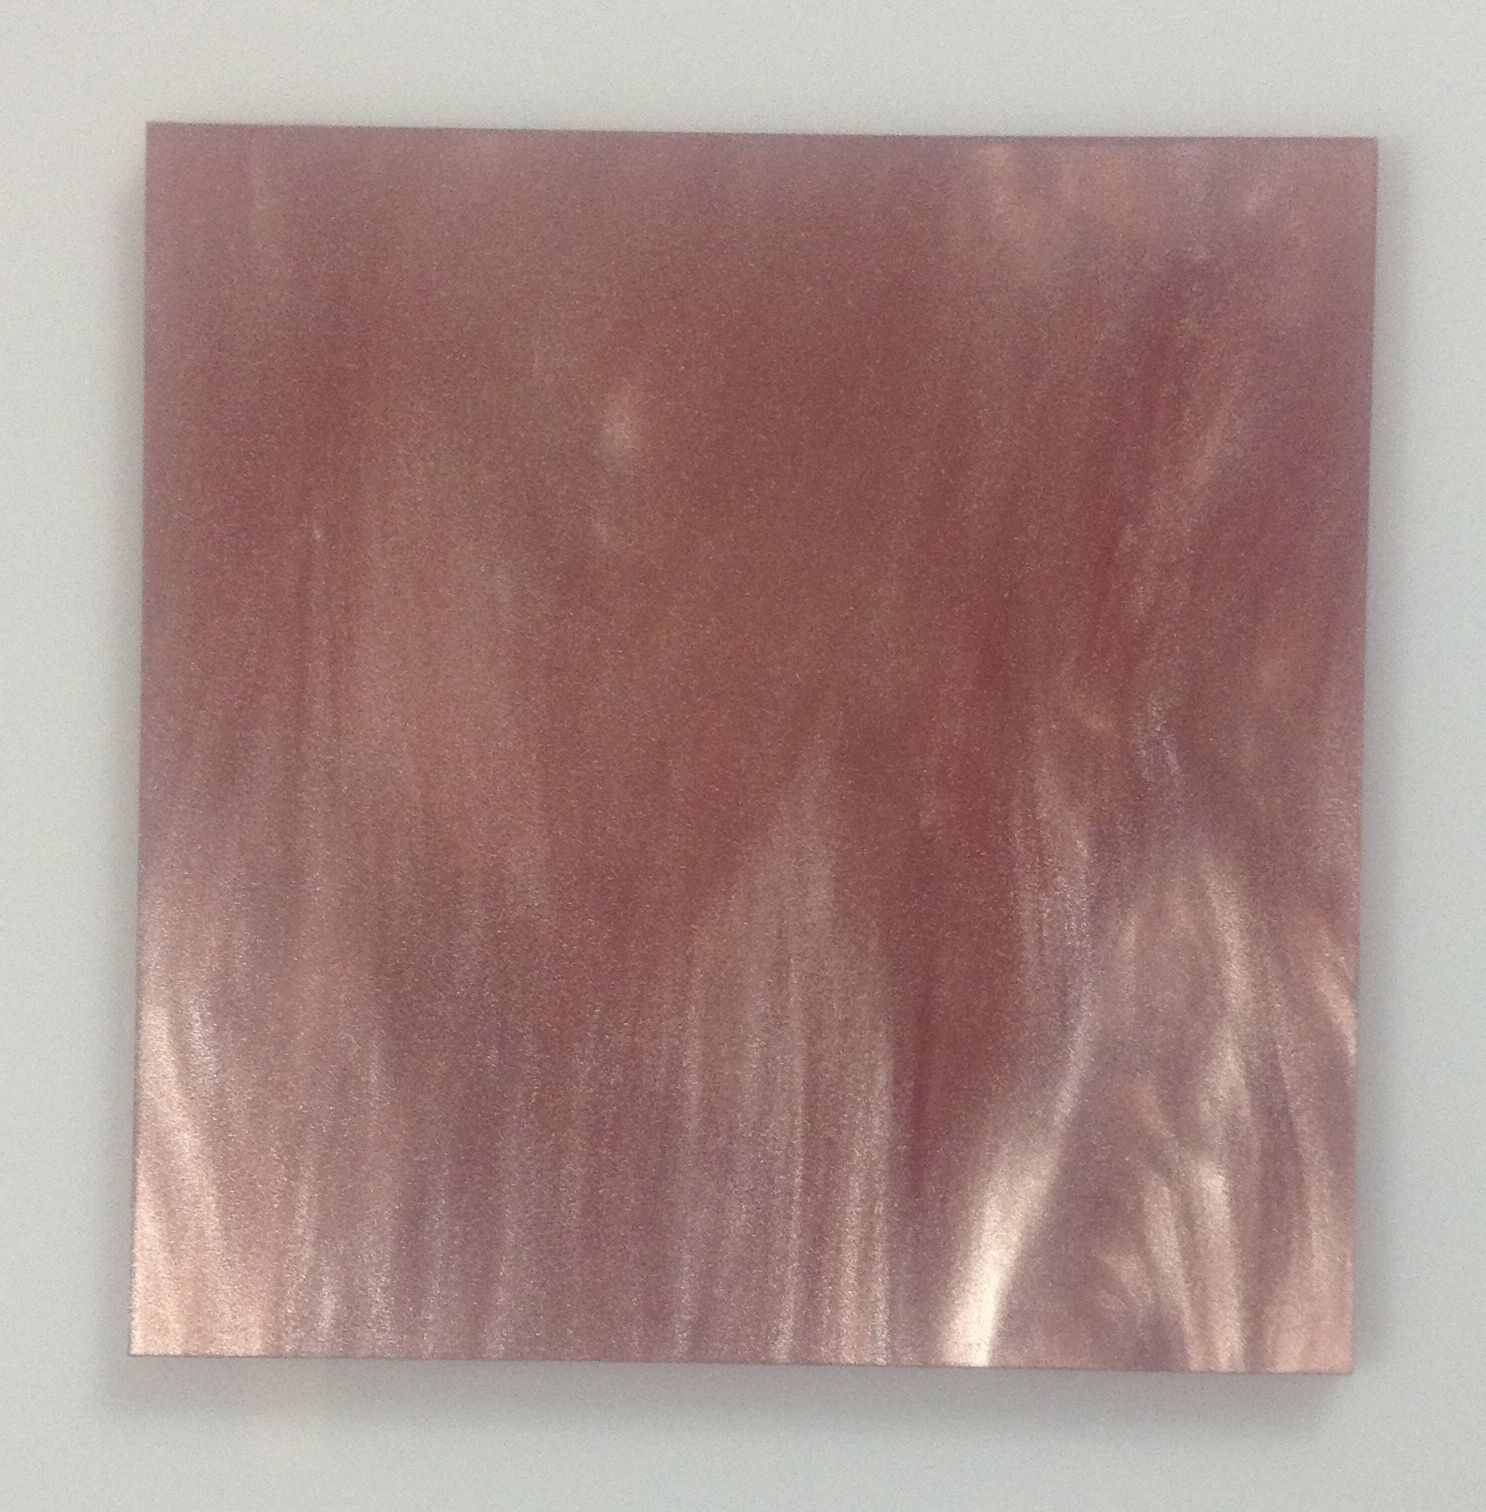 Red Pearl Acrylic Sheet 1 8 Inch A Craft Store Supplies For Professionals And Hobbyists Acrylic Sheets Acrylic Acrylic Colors